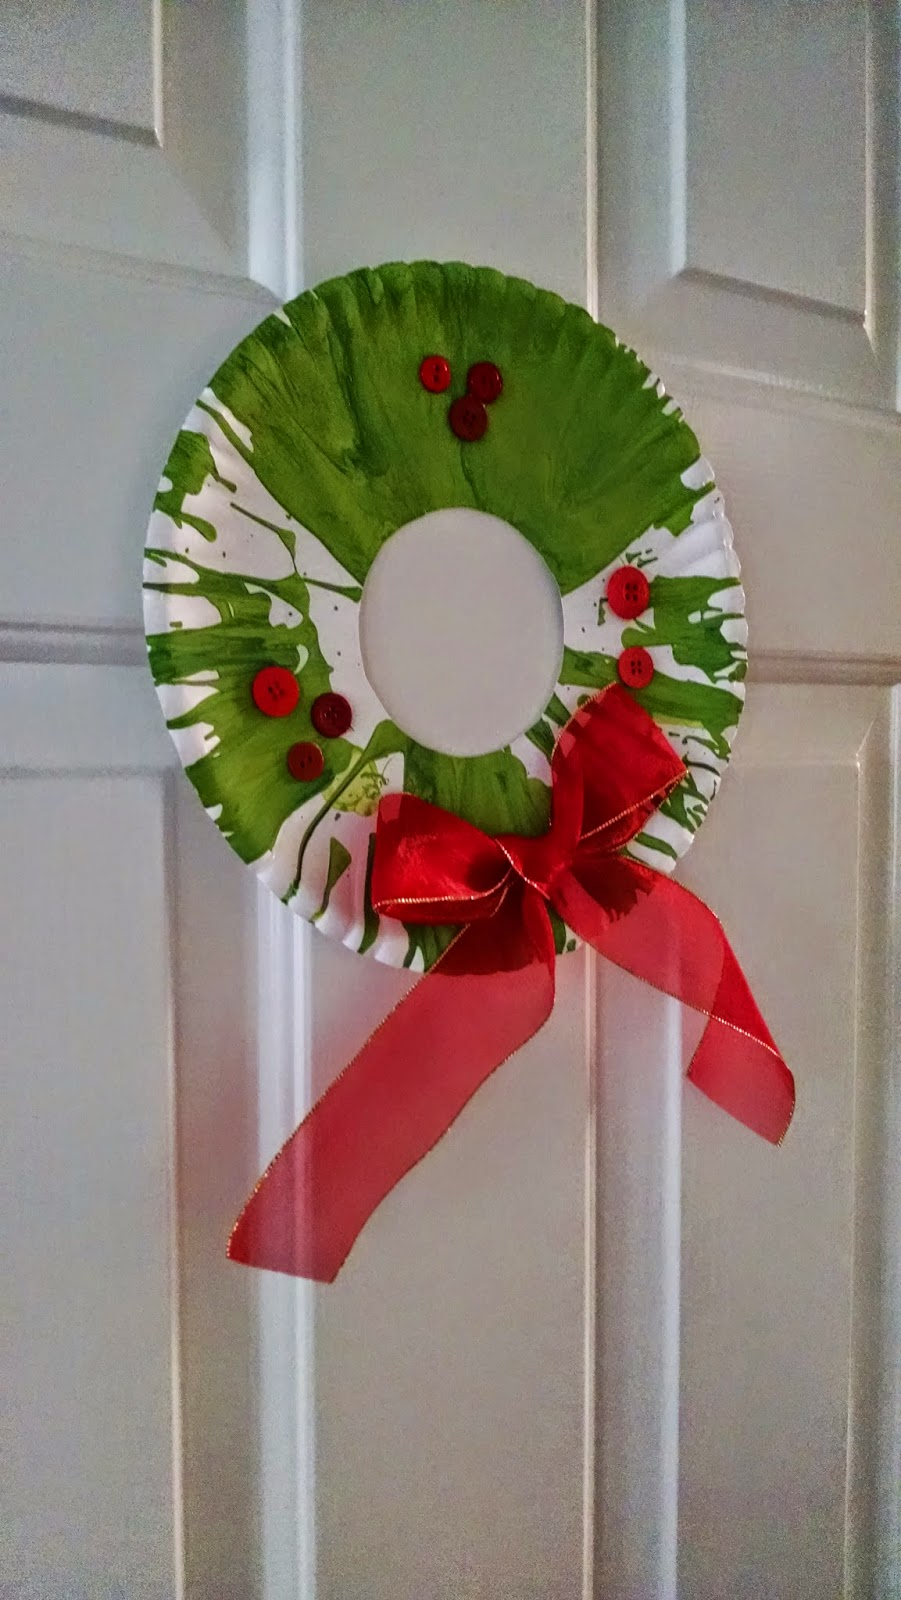 Fruit Loop wreath! Great Christmas art project! | Top ...  |Art Projects Christmas Garland